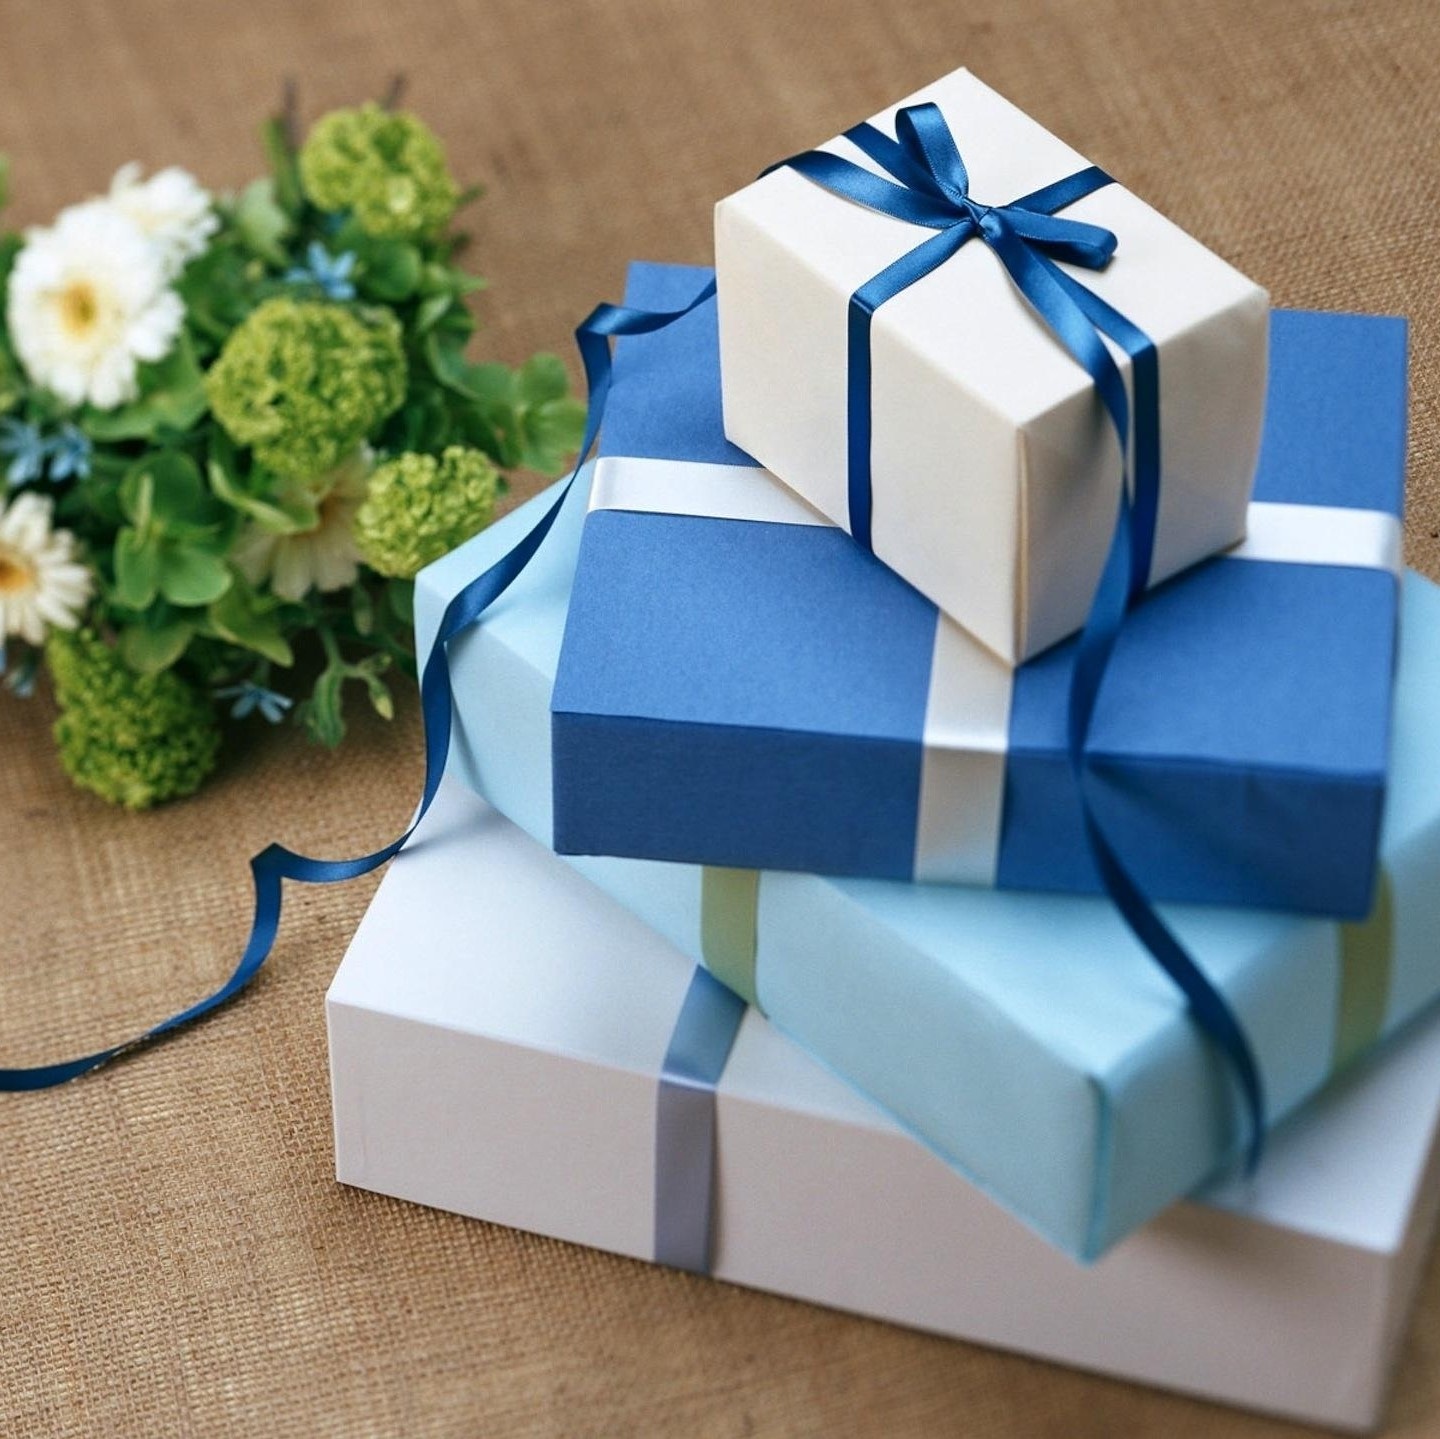 Popular items for wedding gifts!